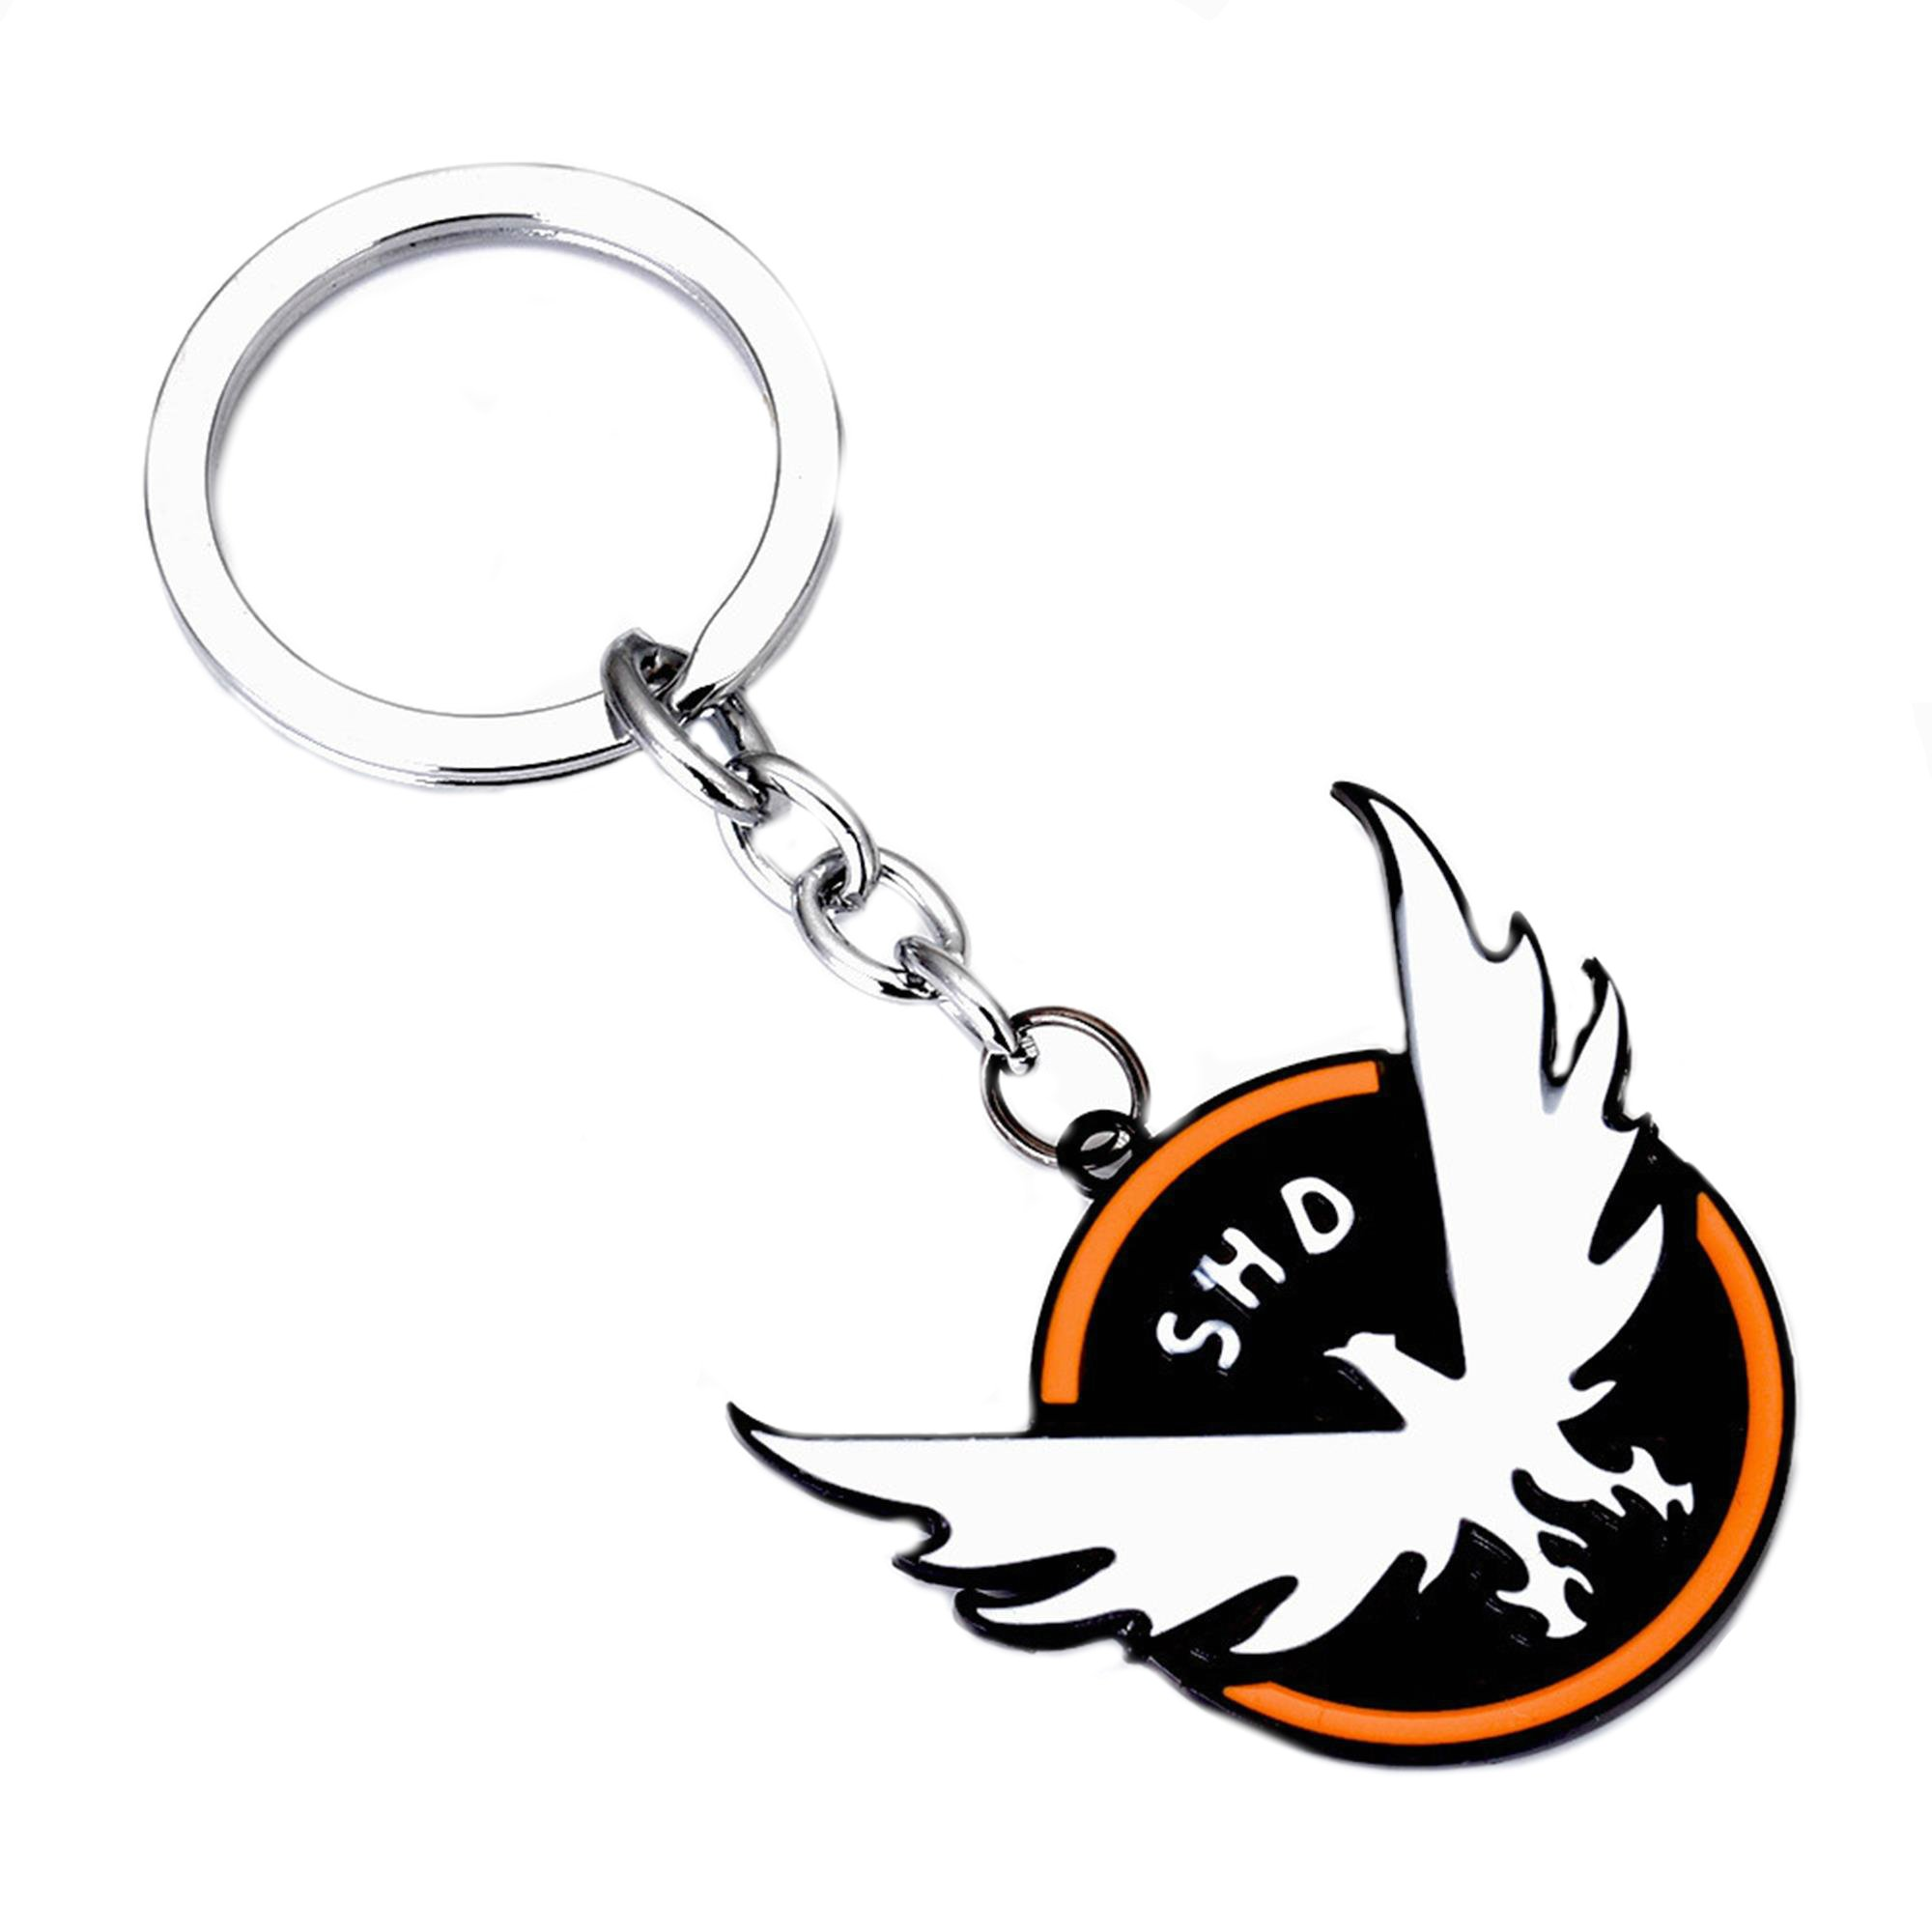 Superheroes Brand Tom Clancy The Division Keychain Key Ring Character Cartoon Superhero Gaming Console PC Games Logo Theme Cosplay Premium Quality Detailed Jewelry Gift Series by